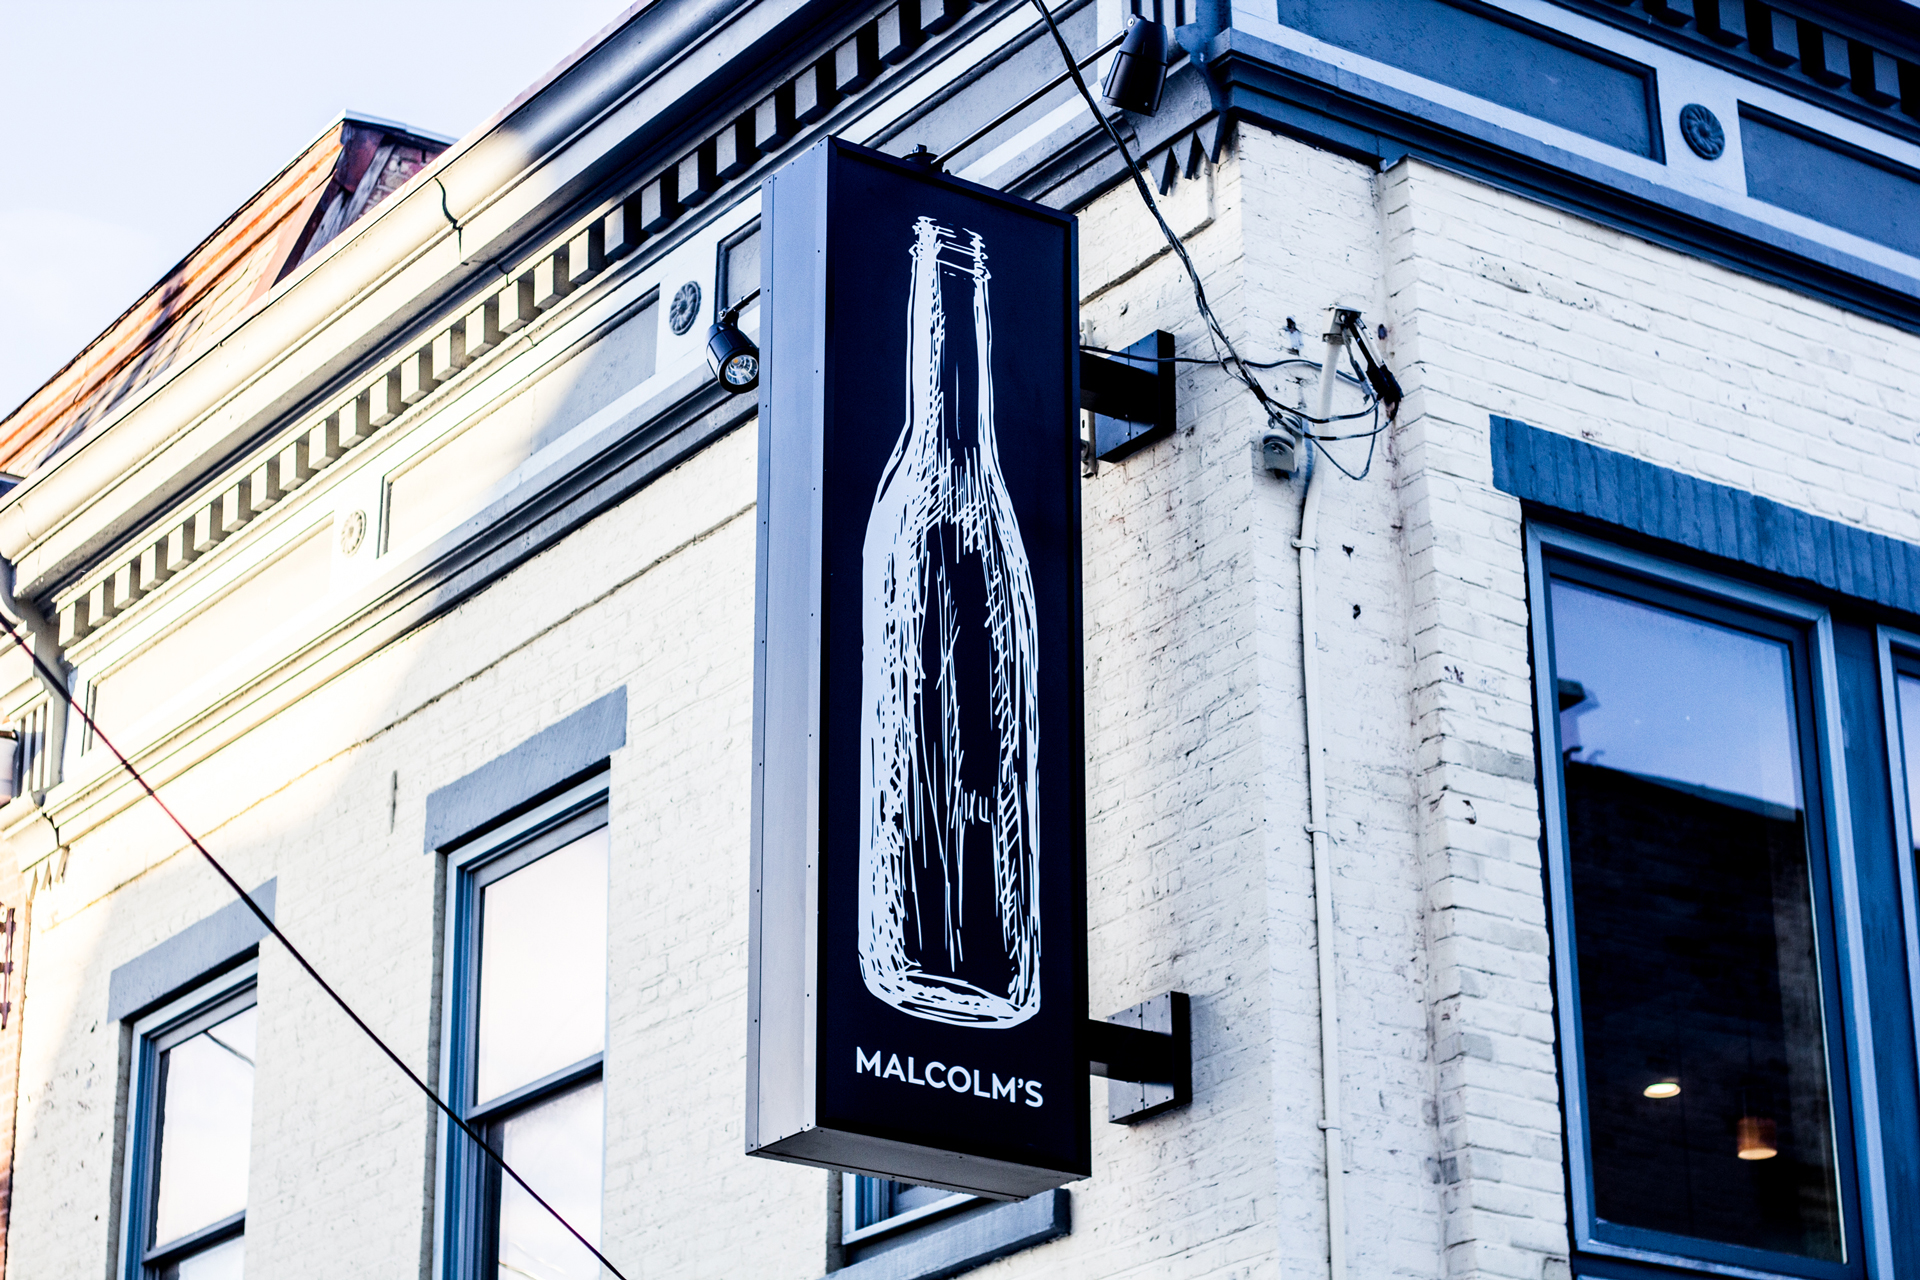 Larger Than Life - It's impossible to miss the signature bottle of Malcolm's when strolling down State Street in downtown Schenectady.